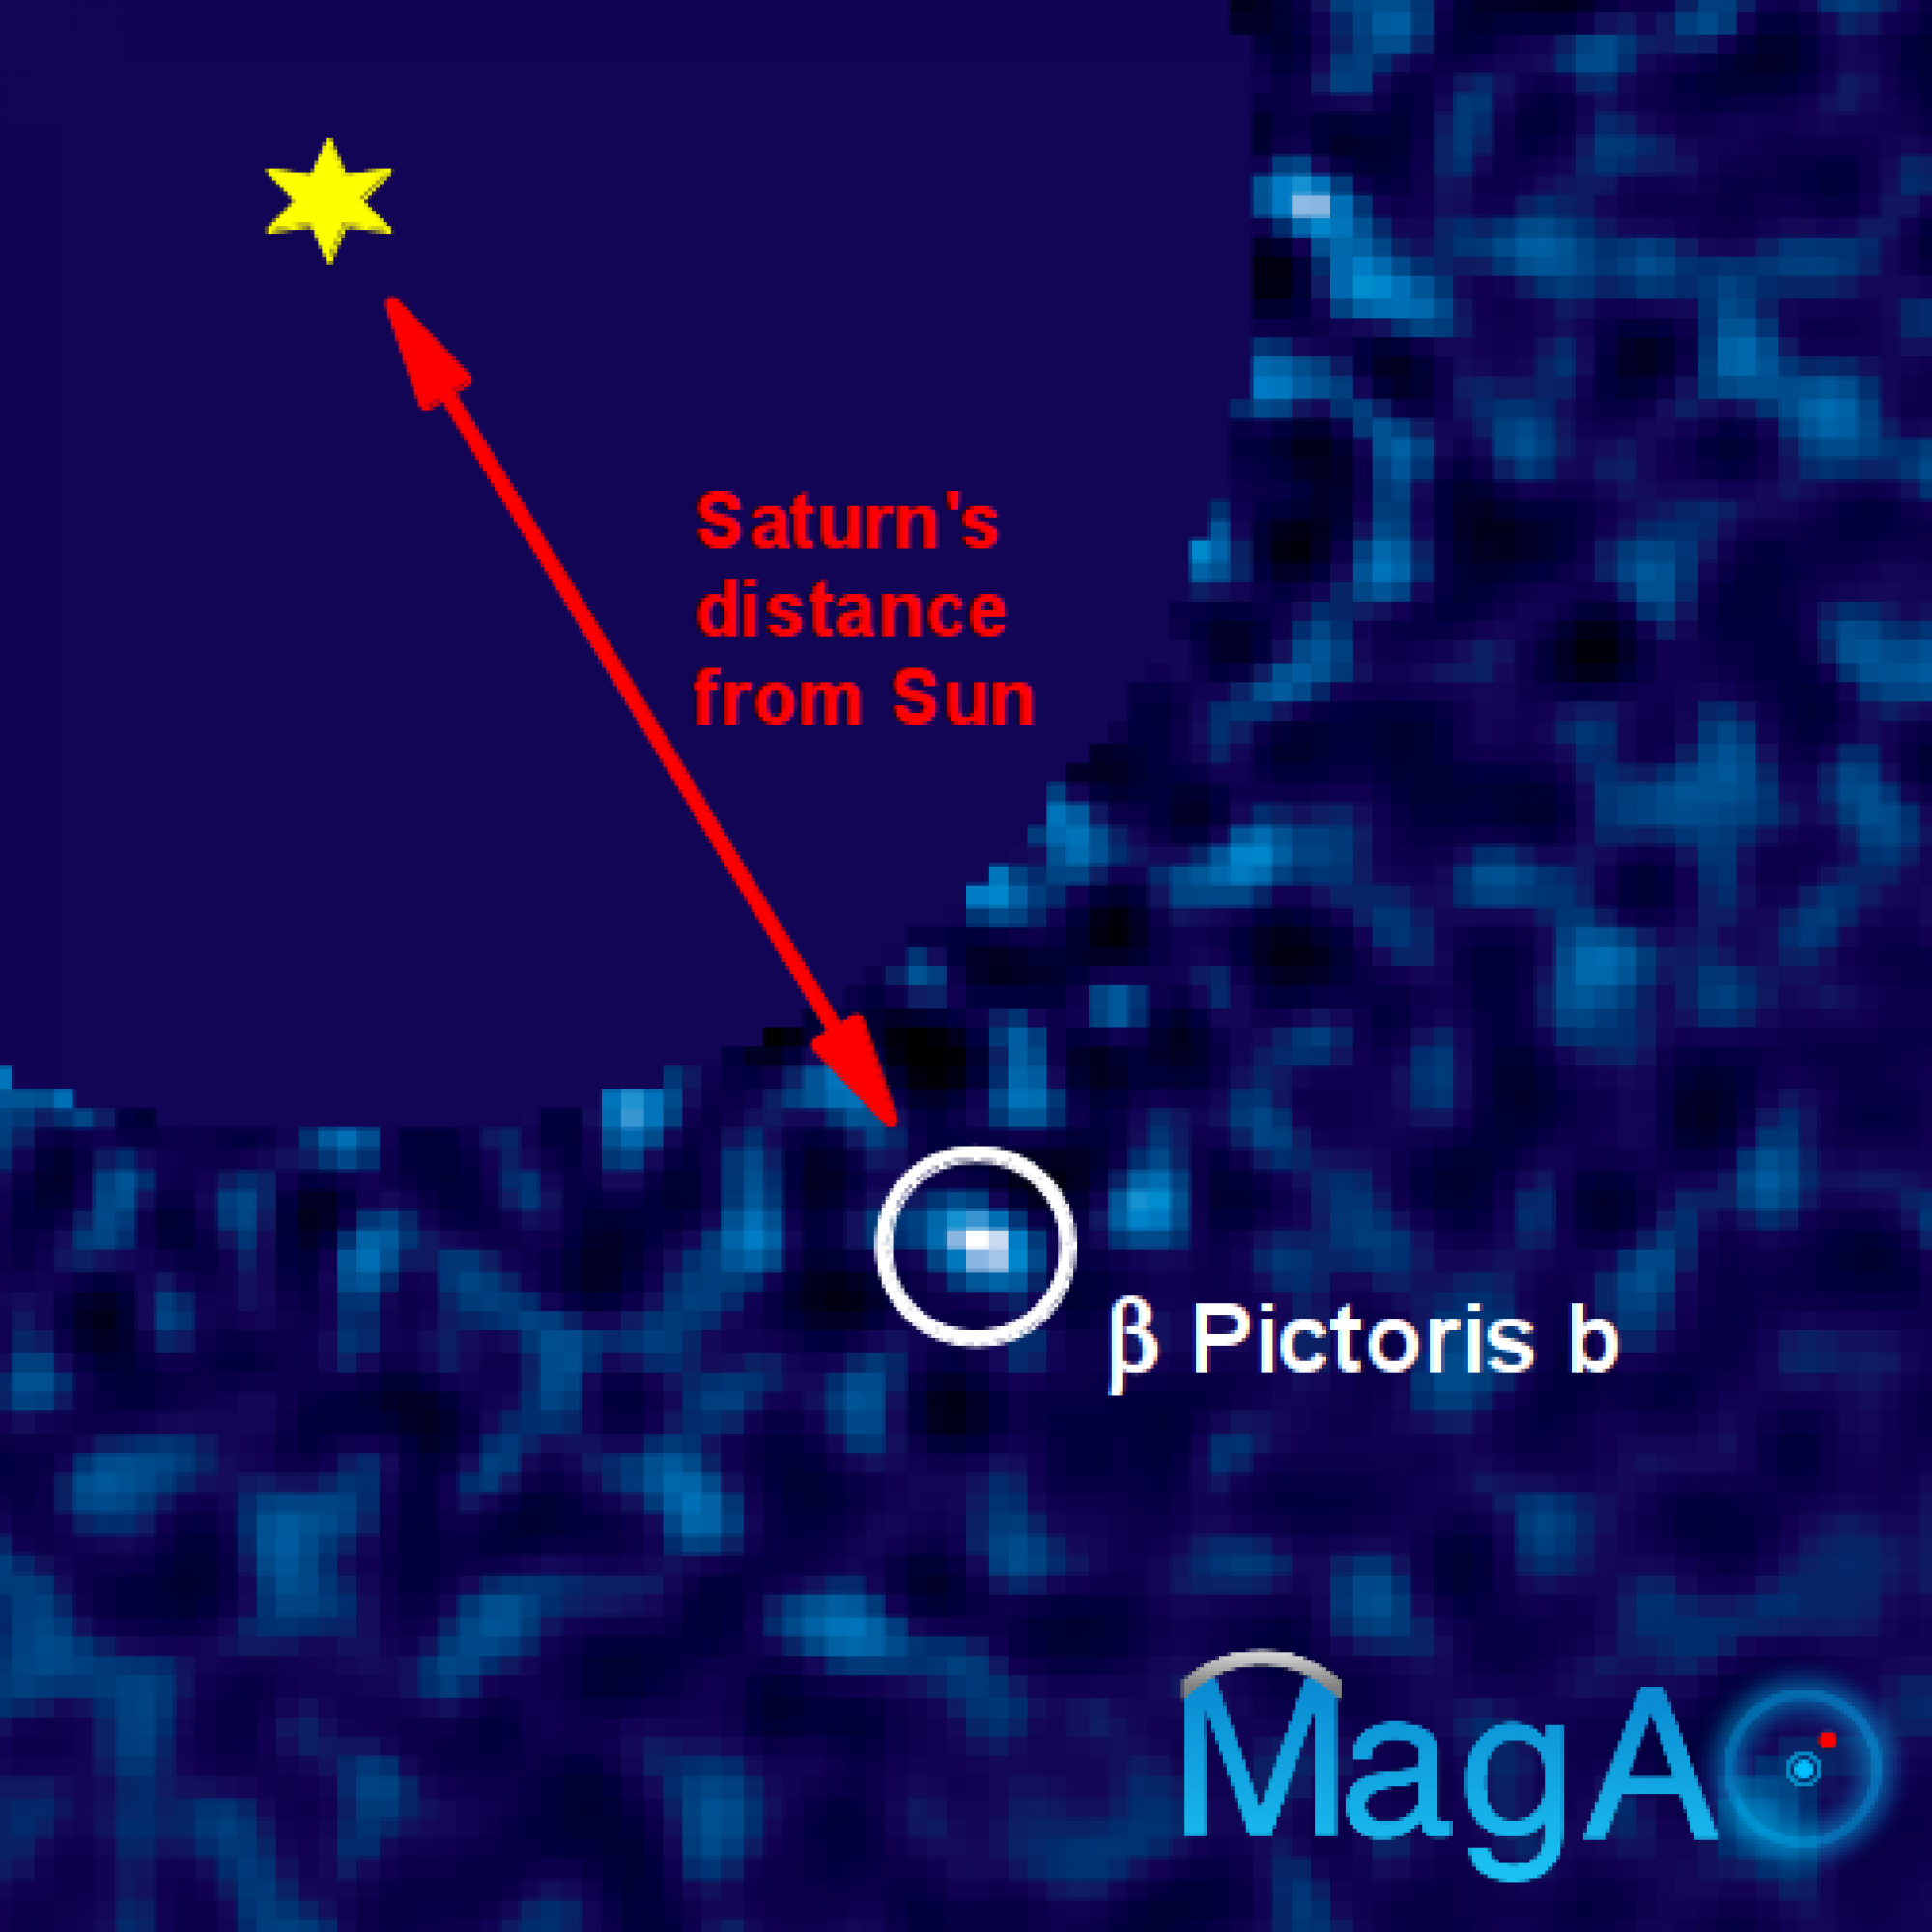 An image of the exoplanet Beta Pictoris b taken with the Magellan Adaptive Optics VisAO camera. This image was made using a CCD camera, which is essentially the same technology as a digital camera.  The planet is nearly 100,000 times fainter than its star